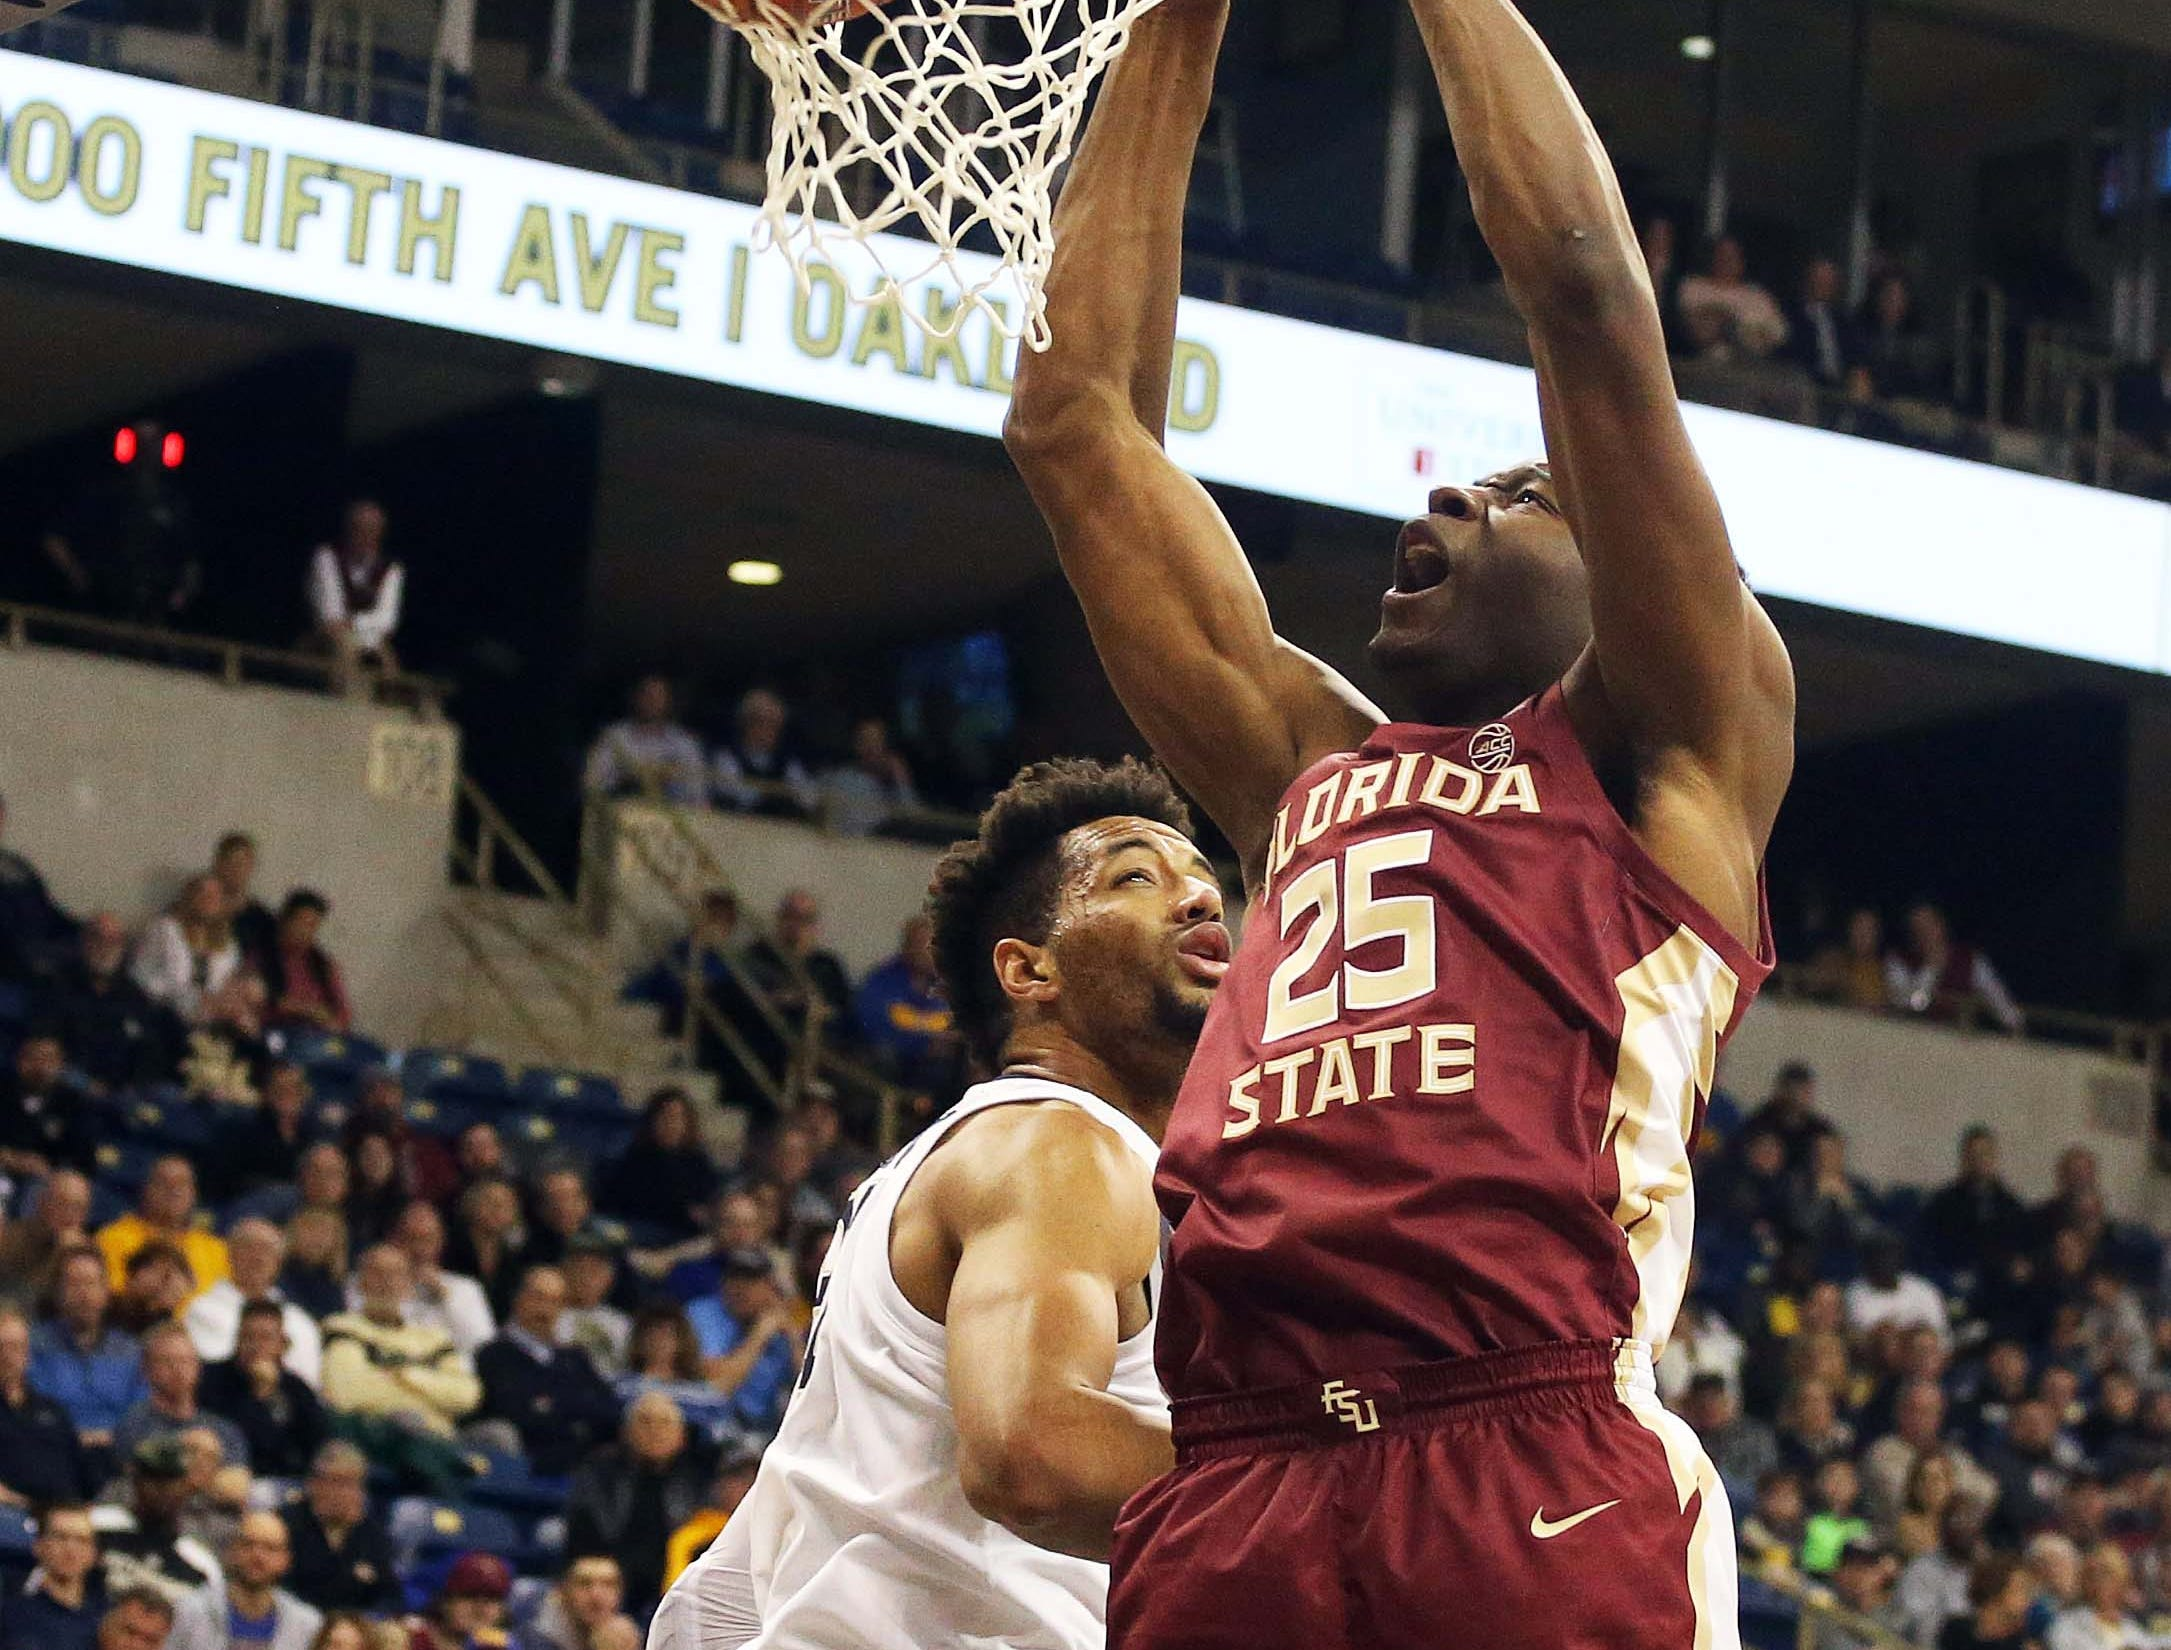 Jan 14, 2019; Pittsburgh, PA, USA; Florida State Seminoles forward Mfiondu Kabengele (25) dunks past Pittsburgh Panthers forward Terrell Brown (21) during the second half at the Petersen Events Center. Pittsburgh won 75-62. Mandatory Credit: Charles LeClaire-USA TODAY Sports